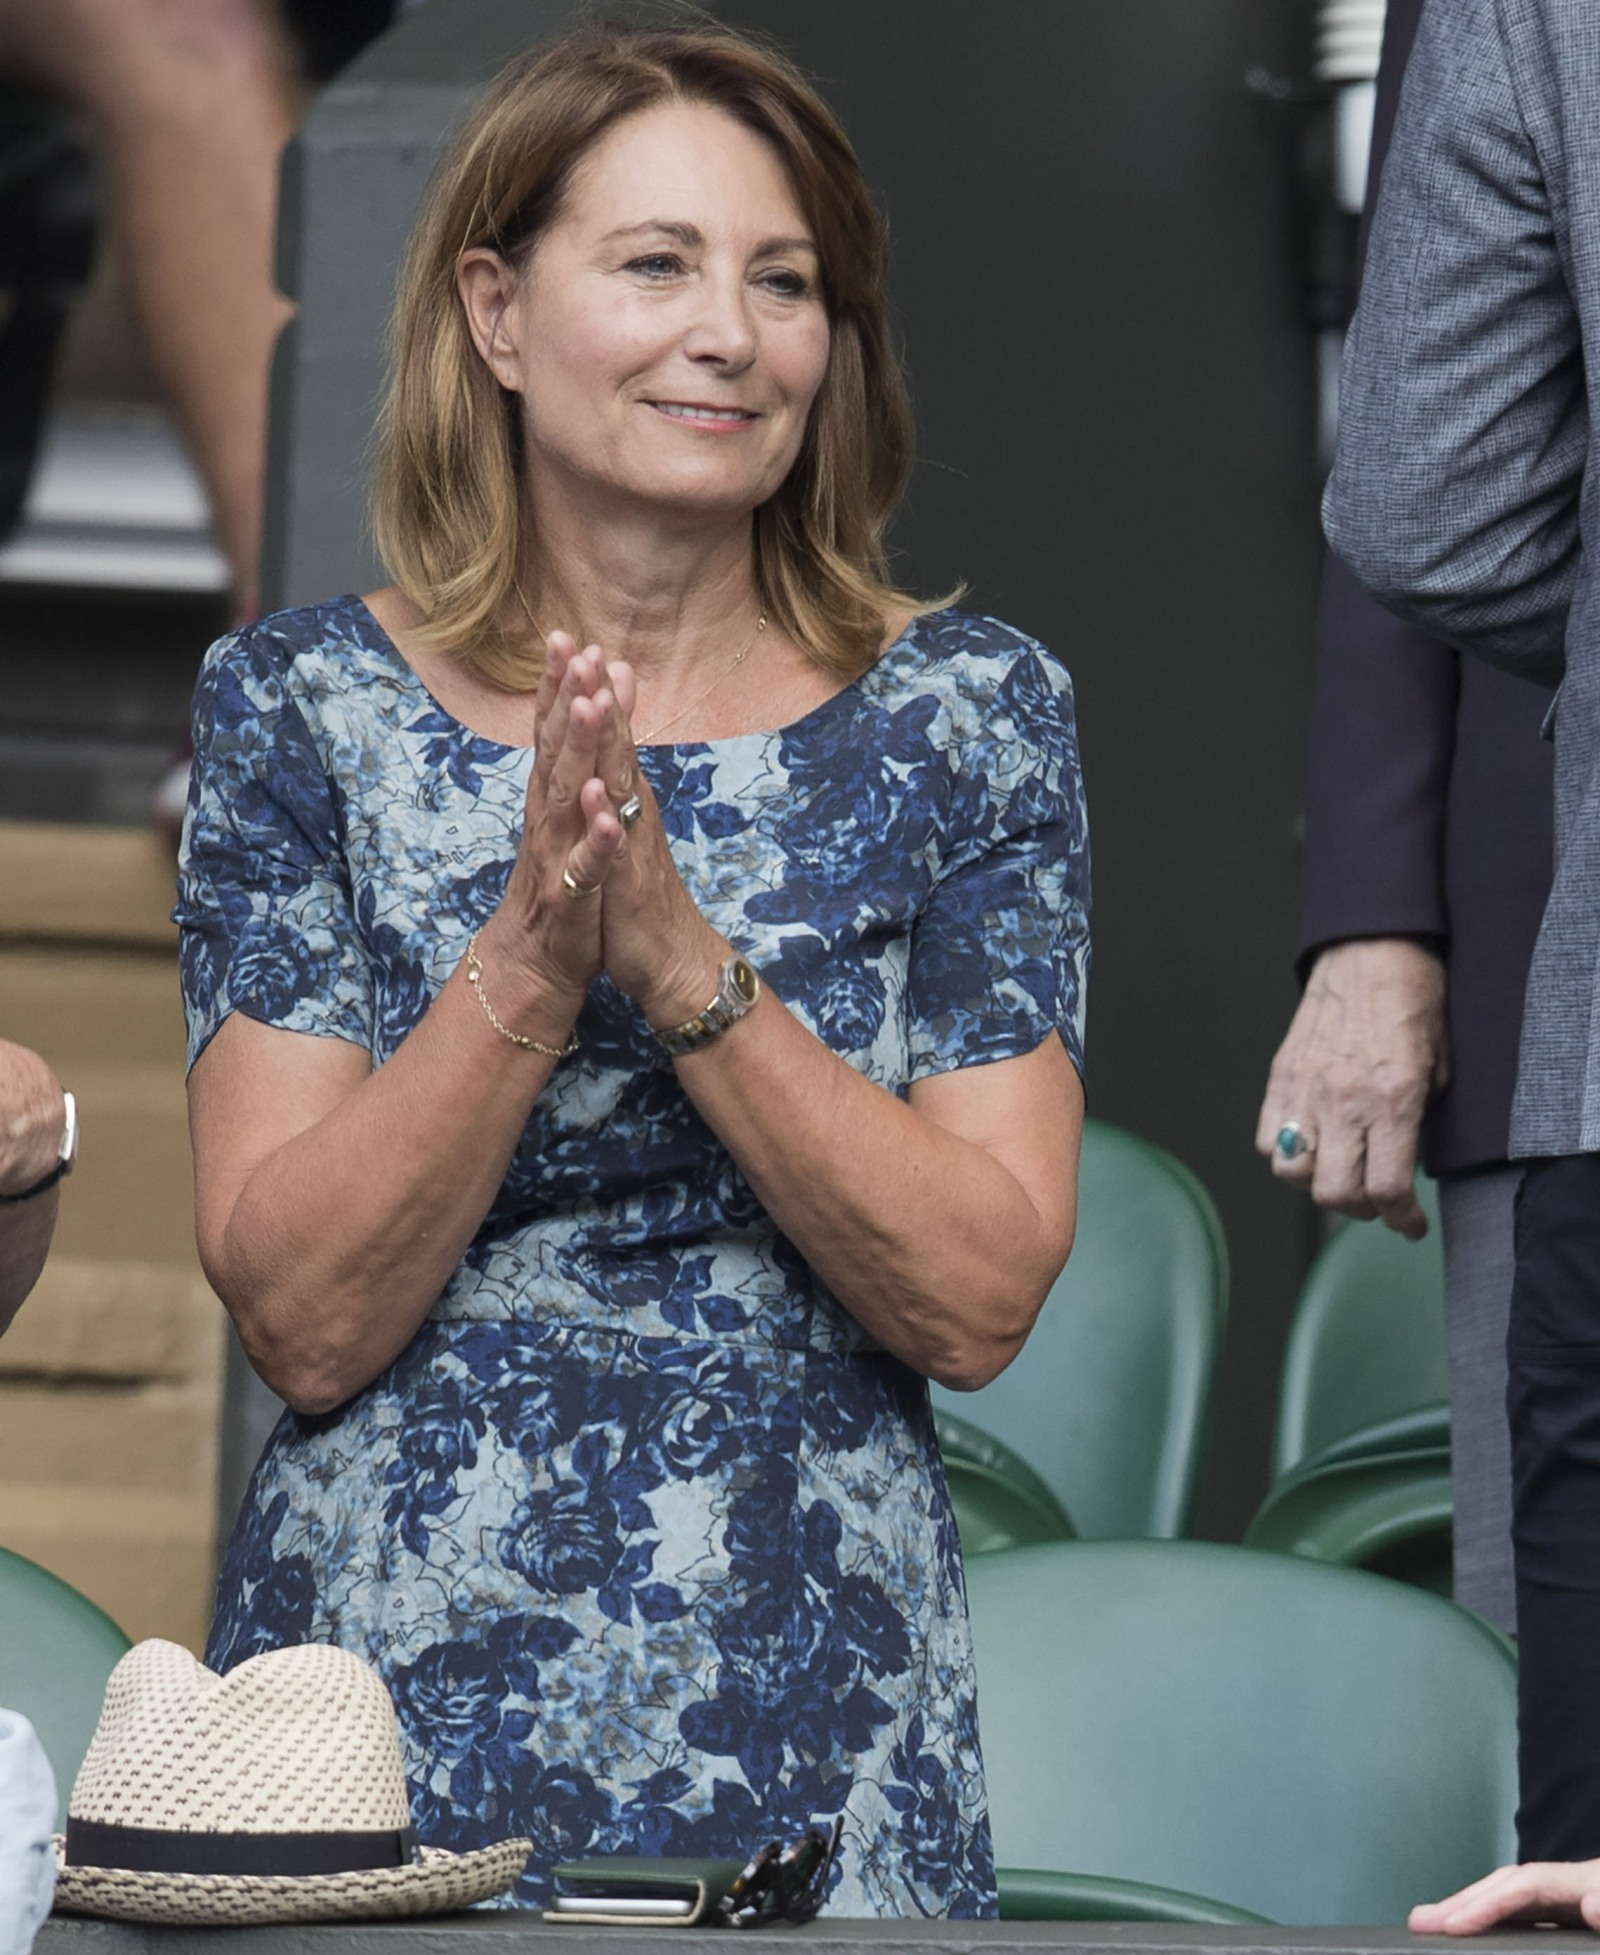 Carole Middleton: 'One of the most important qualities of a good parent is discipline'